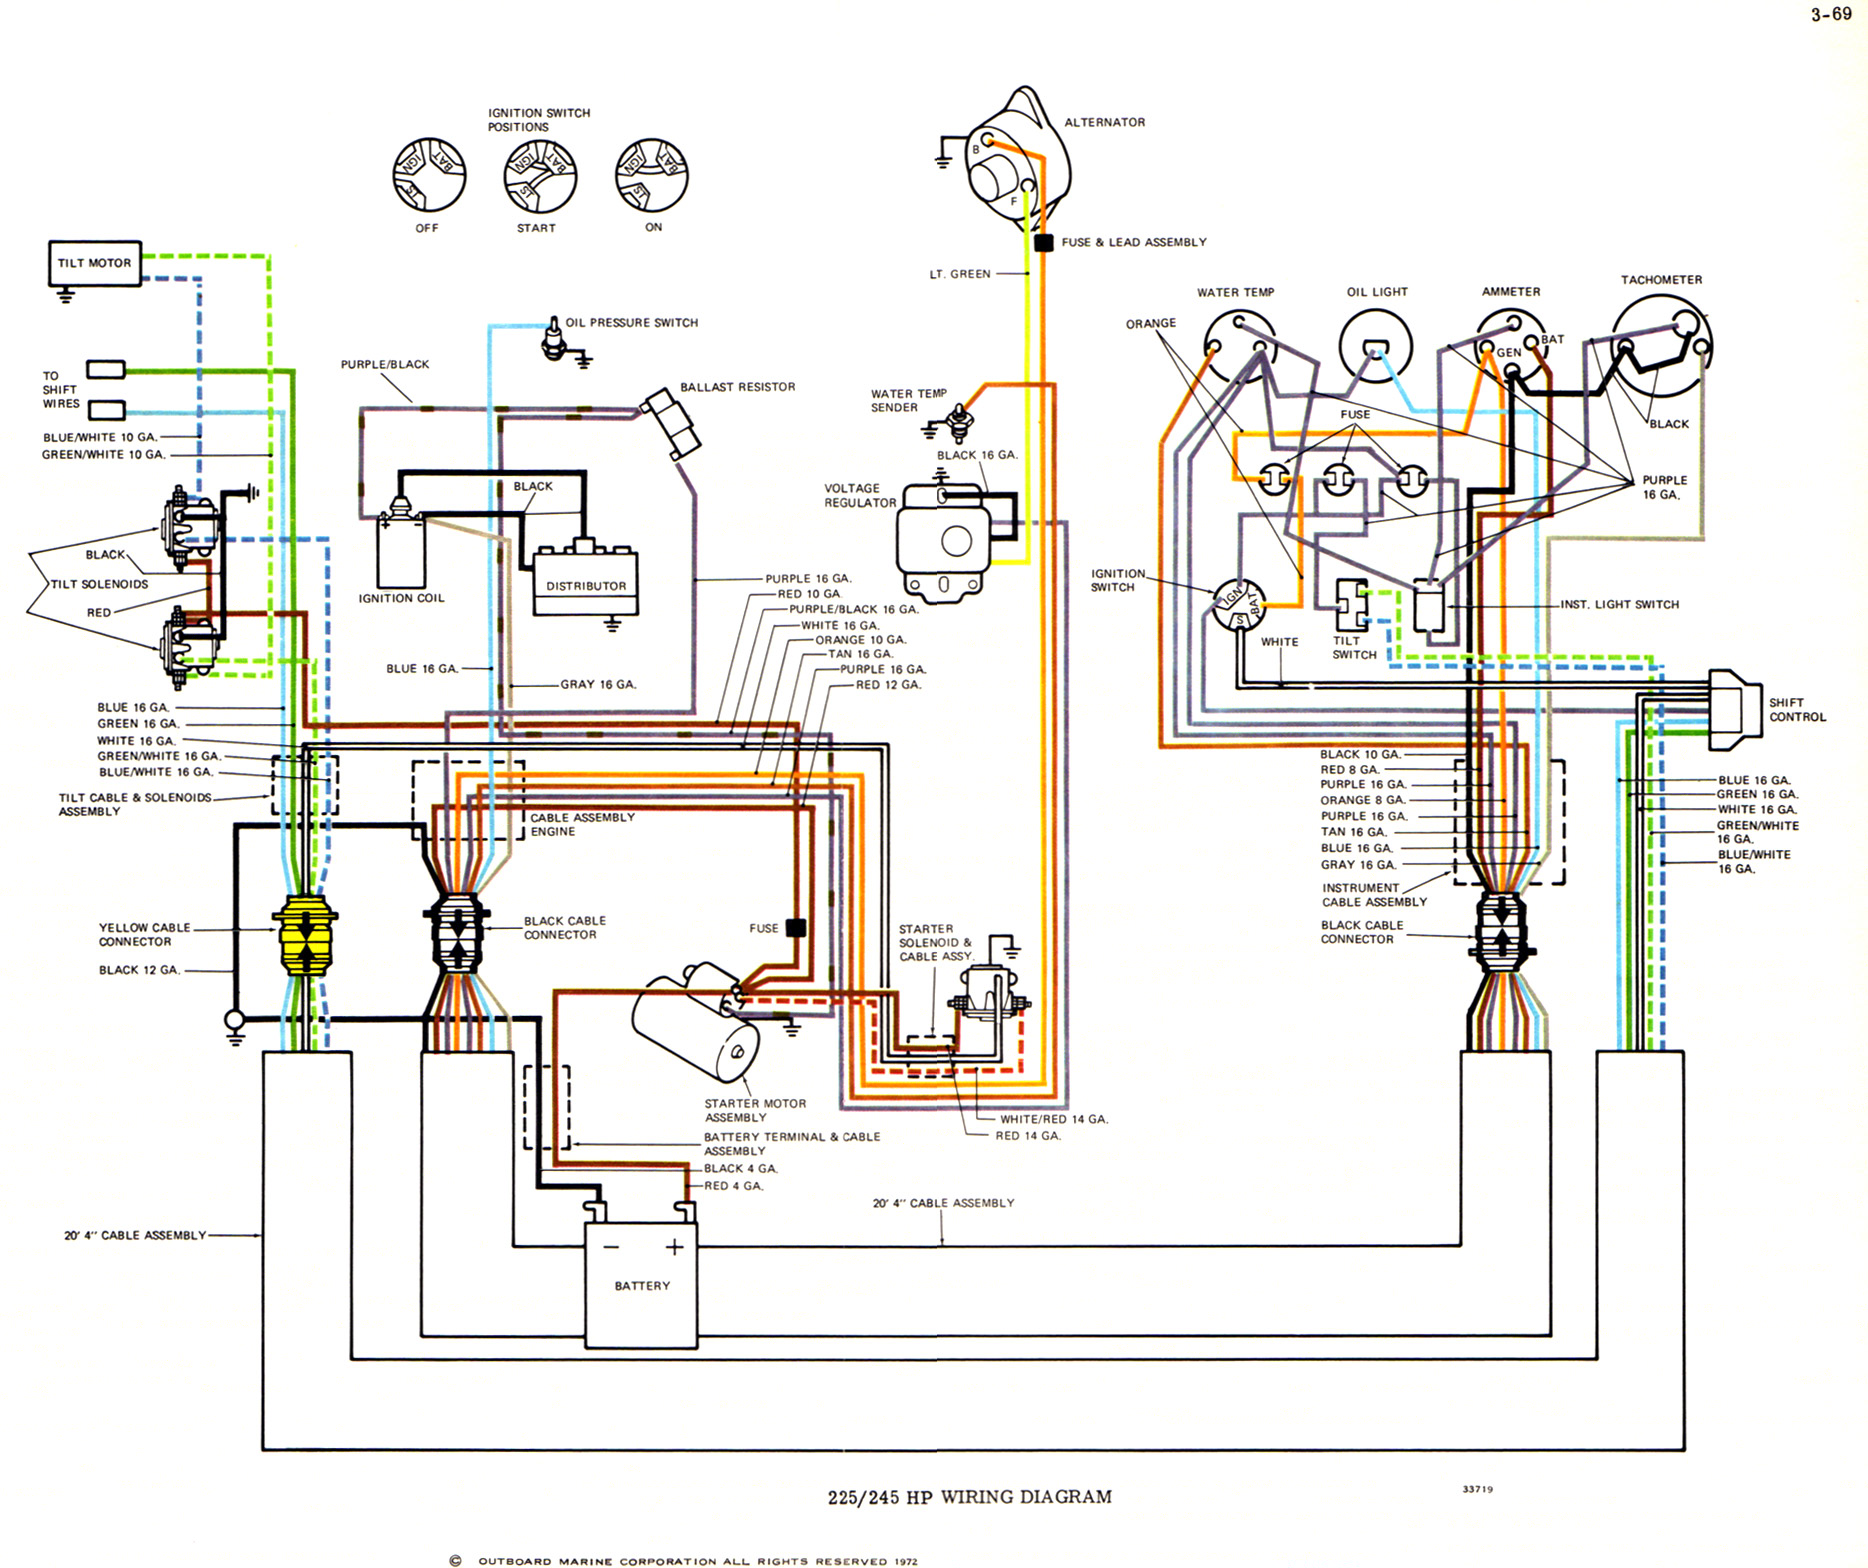 73_OMC_V8_all_big omc wiring harness diagram johmson wiring harness \u2022 wiring marine tachometer wiring diagram at bayanpartner.co